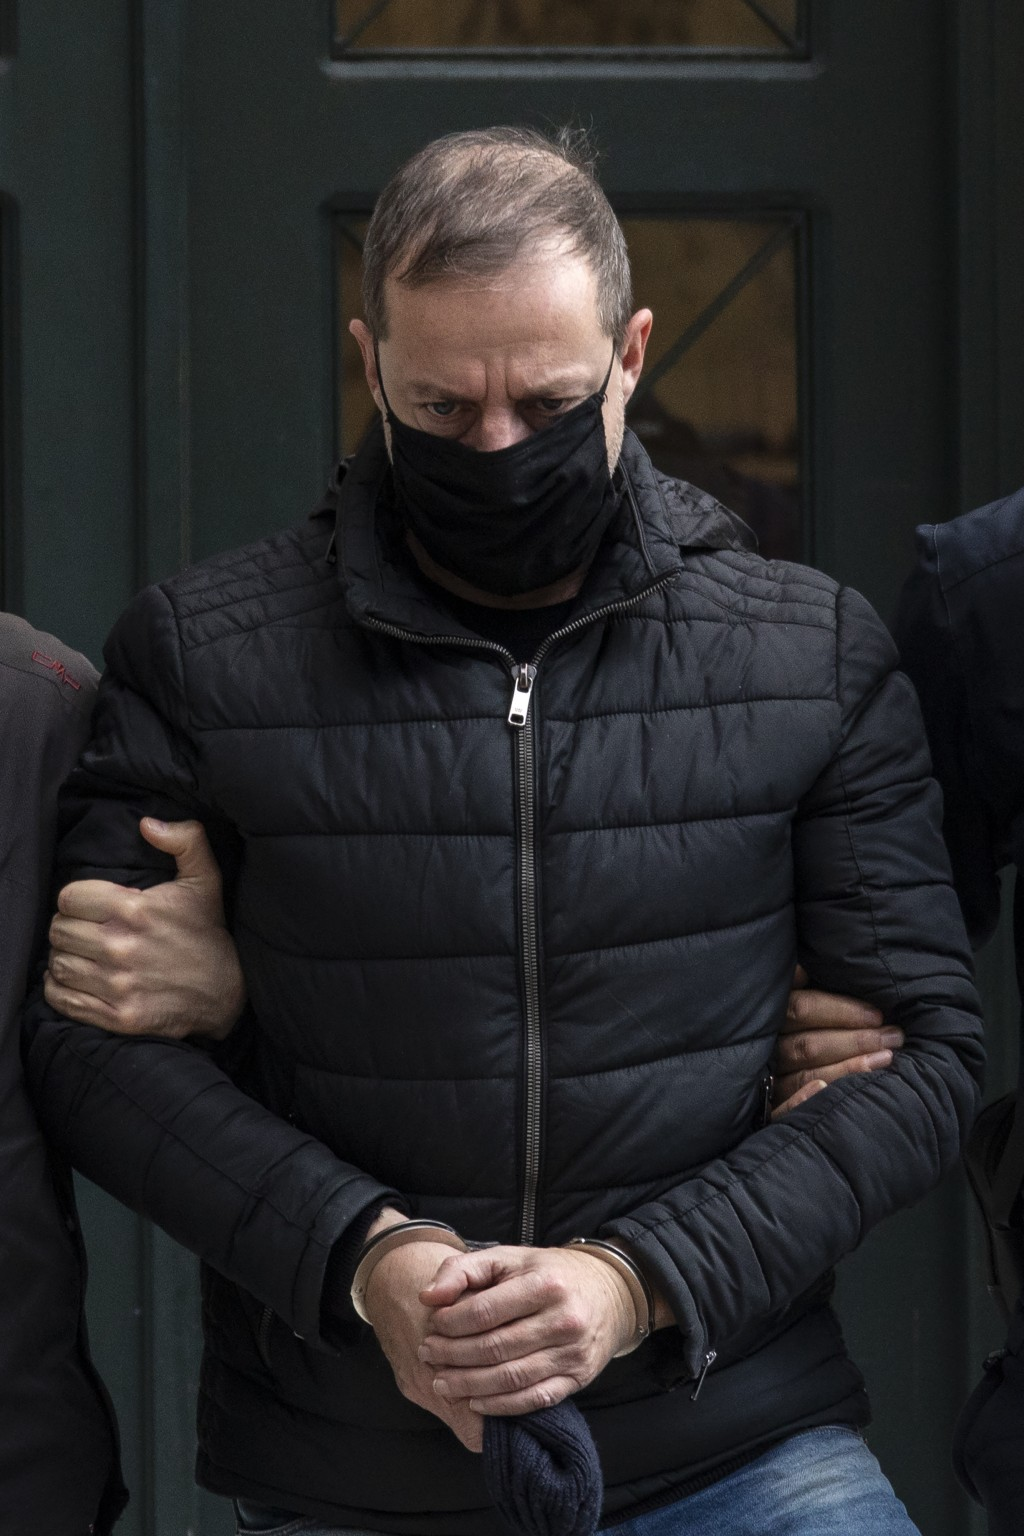 Handcuffed actor and director Dimitris Lignadis, leaves a magistrate's office in Athens, Sunday, Feb. 21, 2021. Lignadis, 56, the former artistic dire...